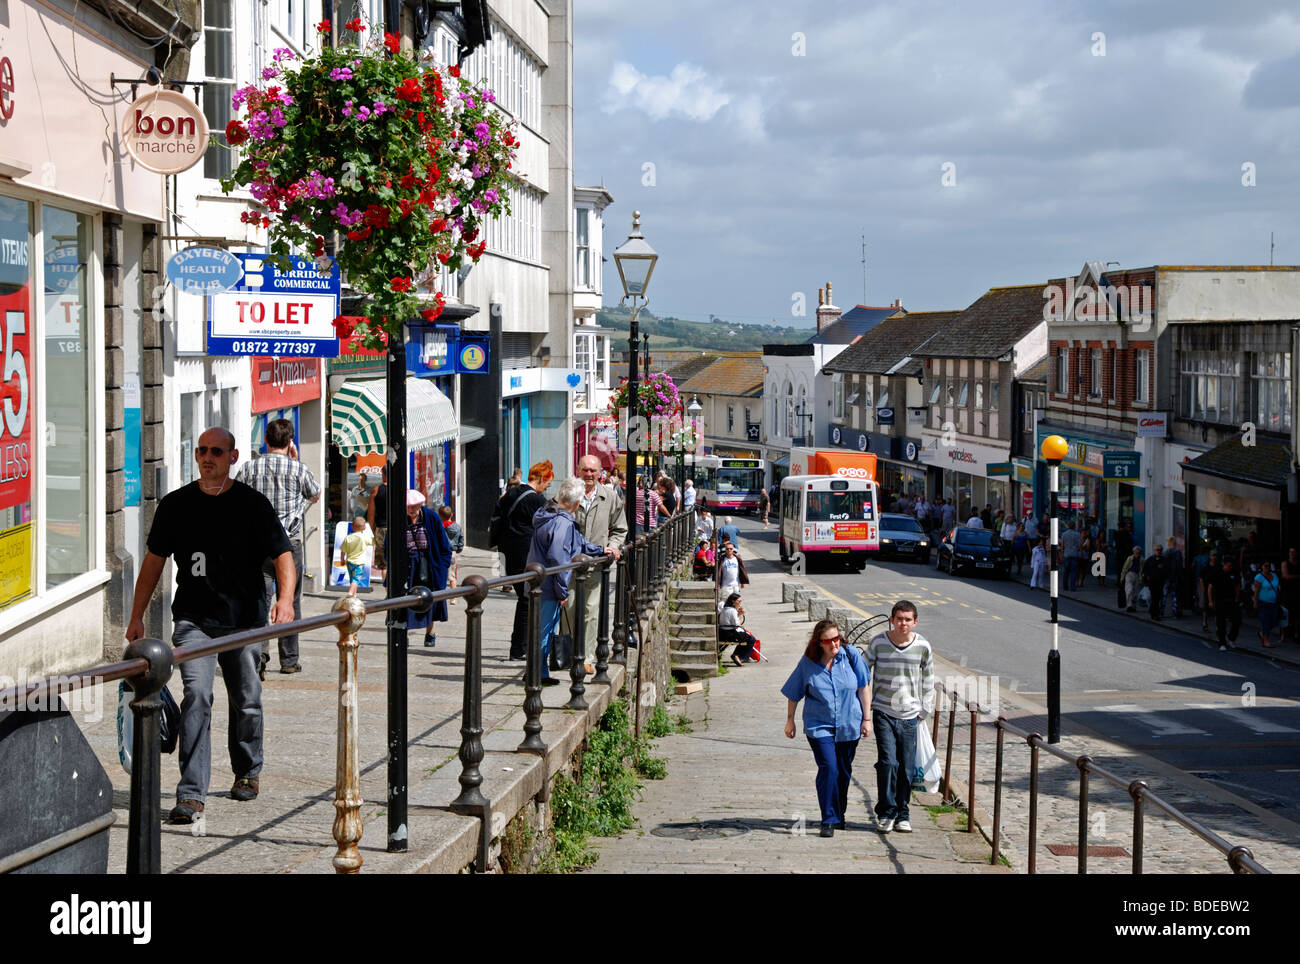 people shopping in market jew street, penzance cornwall, uk Stock Photo